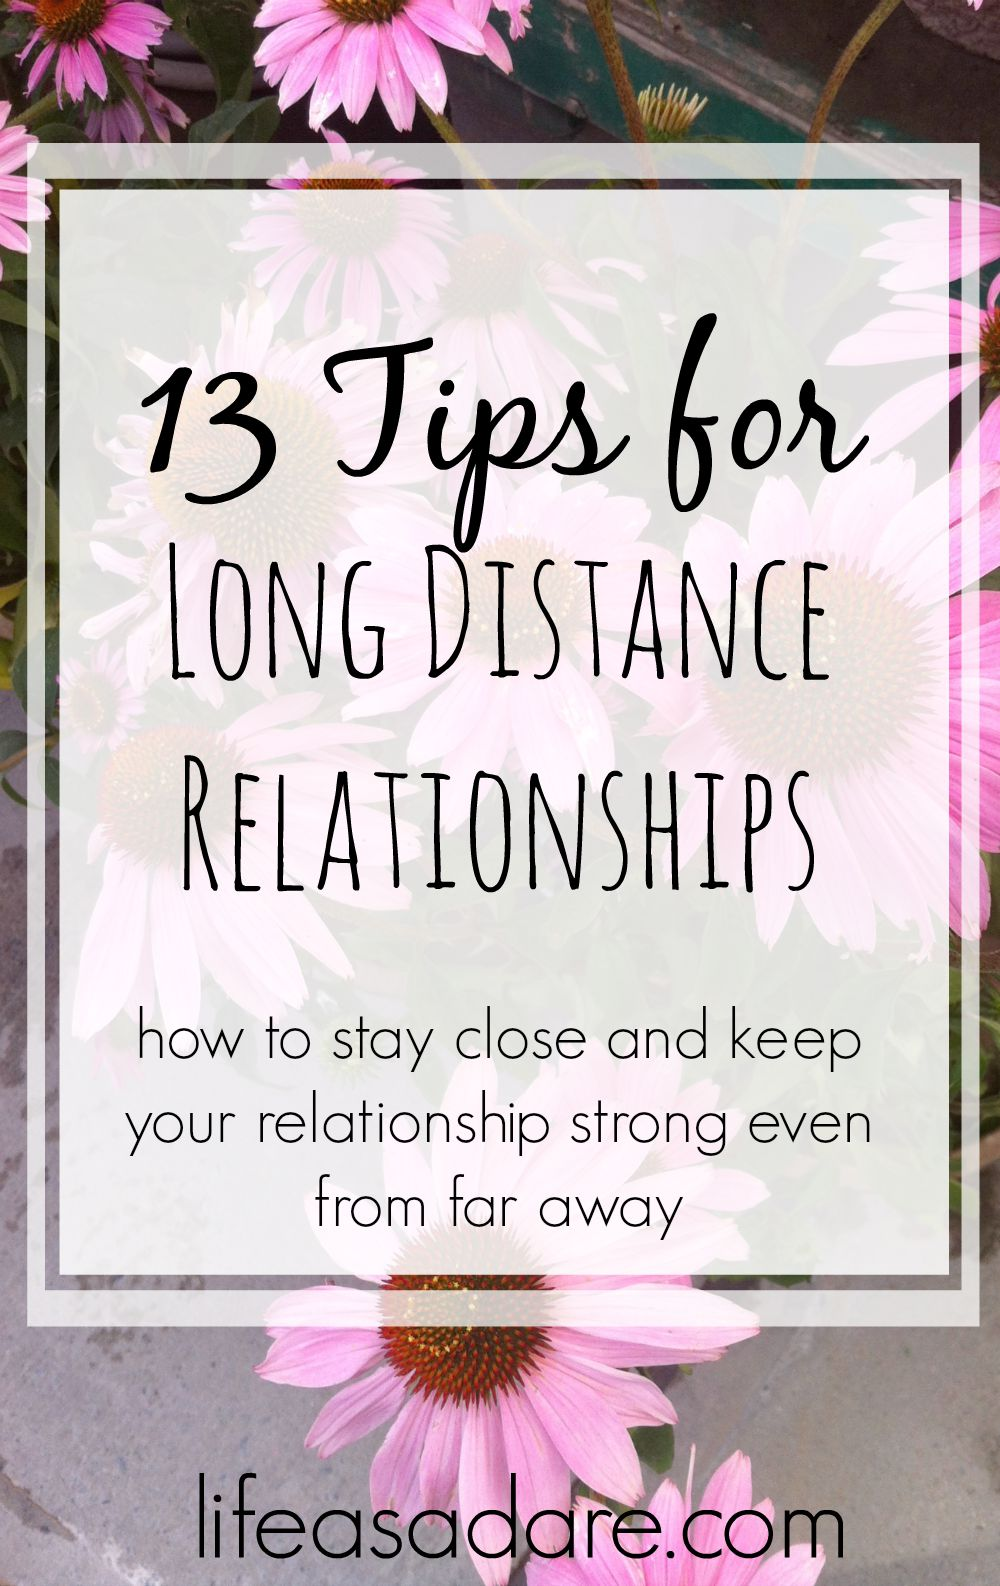 Tips to keep a relationship strong